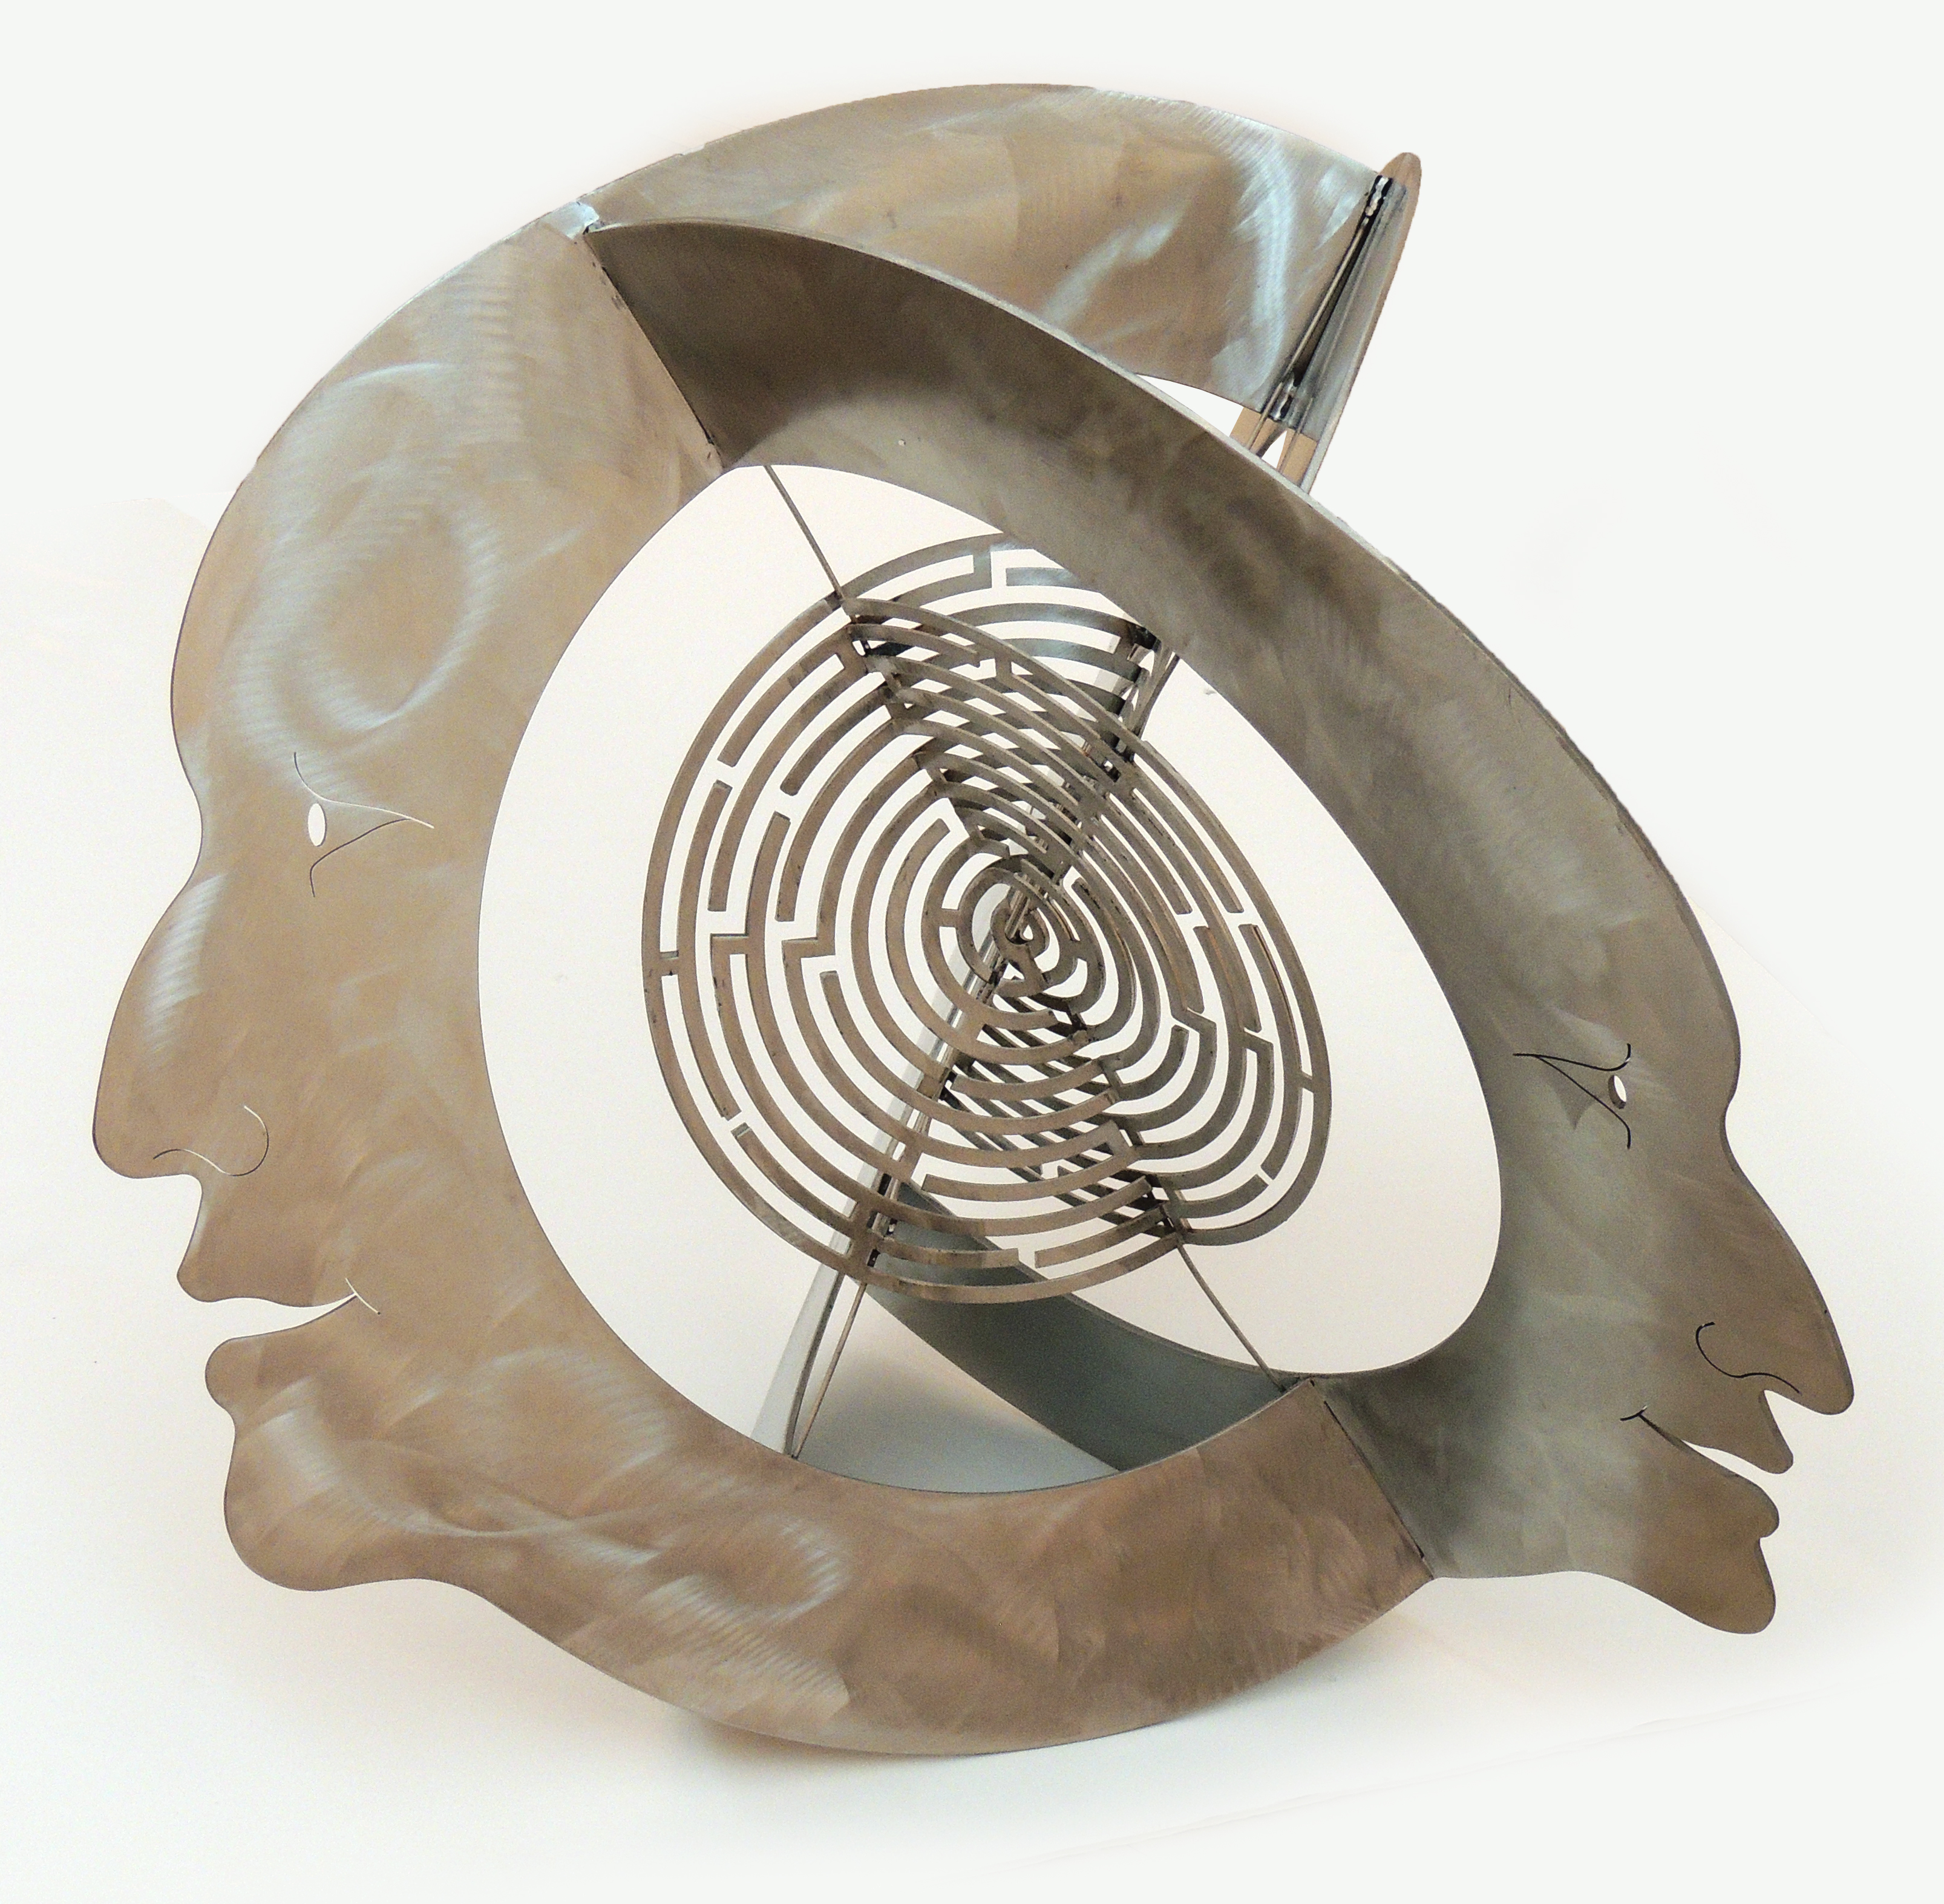 Jon Barlow Hudson | EIDOLON – LABYRINTH | Stainless Steel